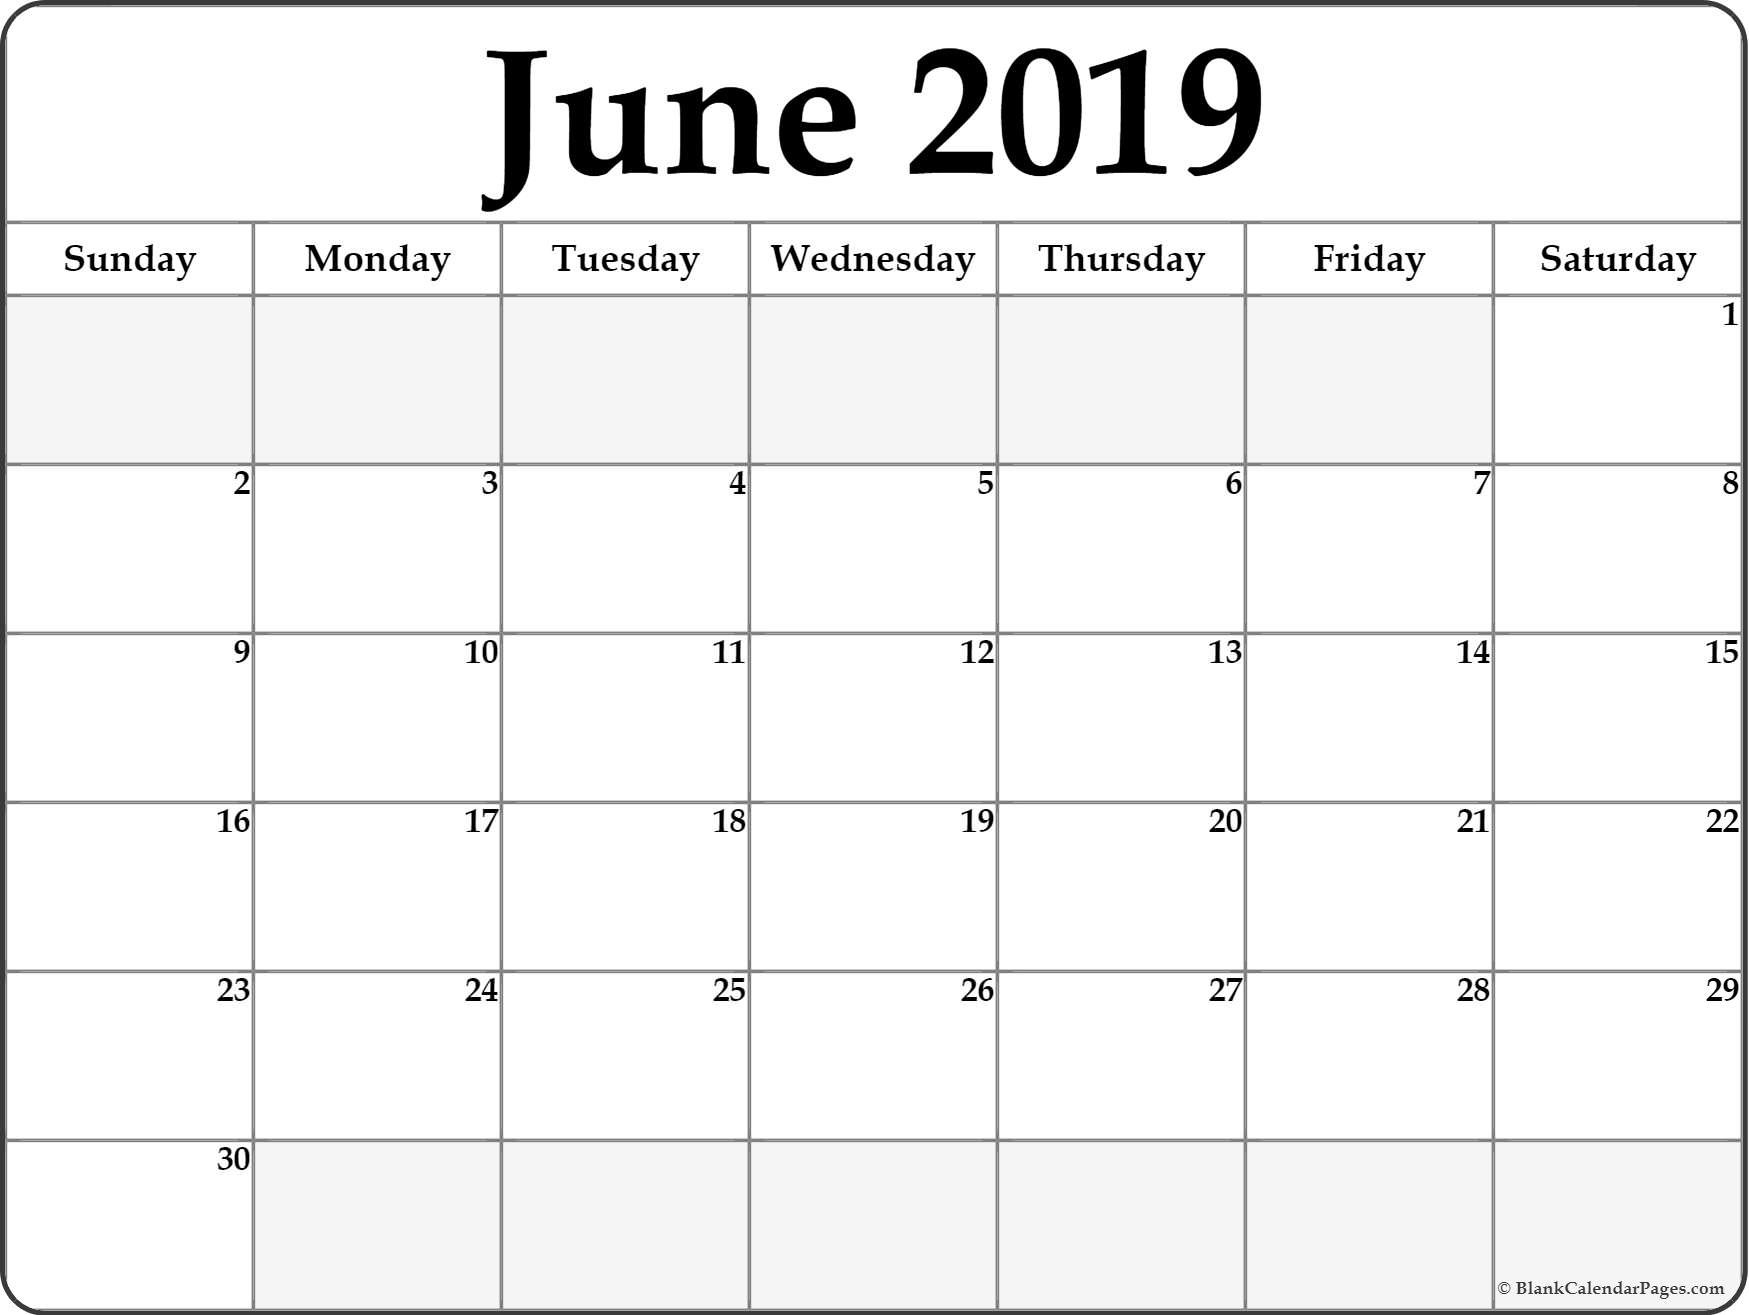 June 2019 Calendar | Free Printable Monthly Calendars June 2 2019 Calendar